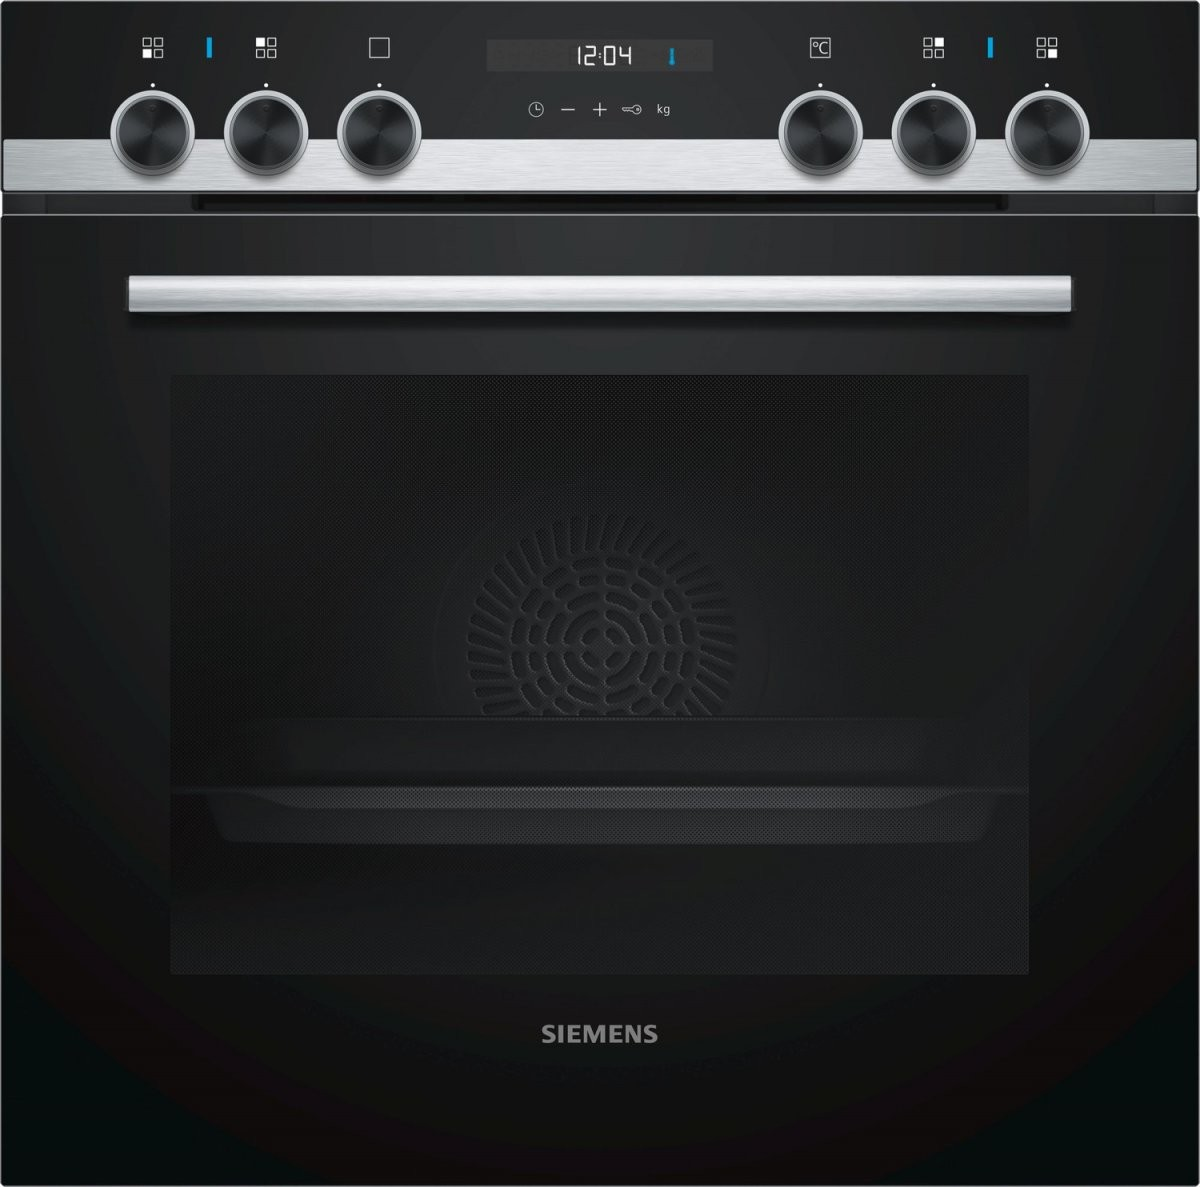 Siemens Eq523Ka00 Herdset 71L 50275°C Cookcontrol10 Glaskeramik von Backofen 50 Cm Breit Photo